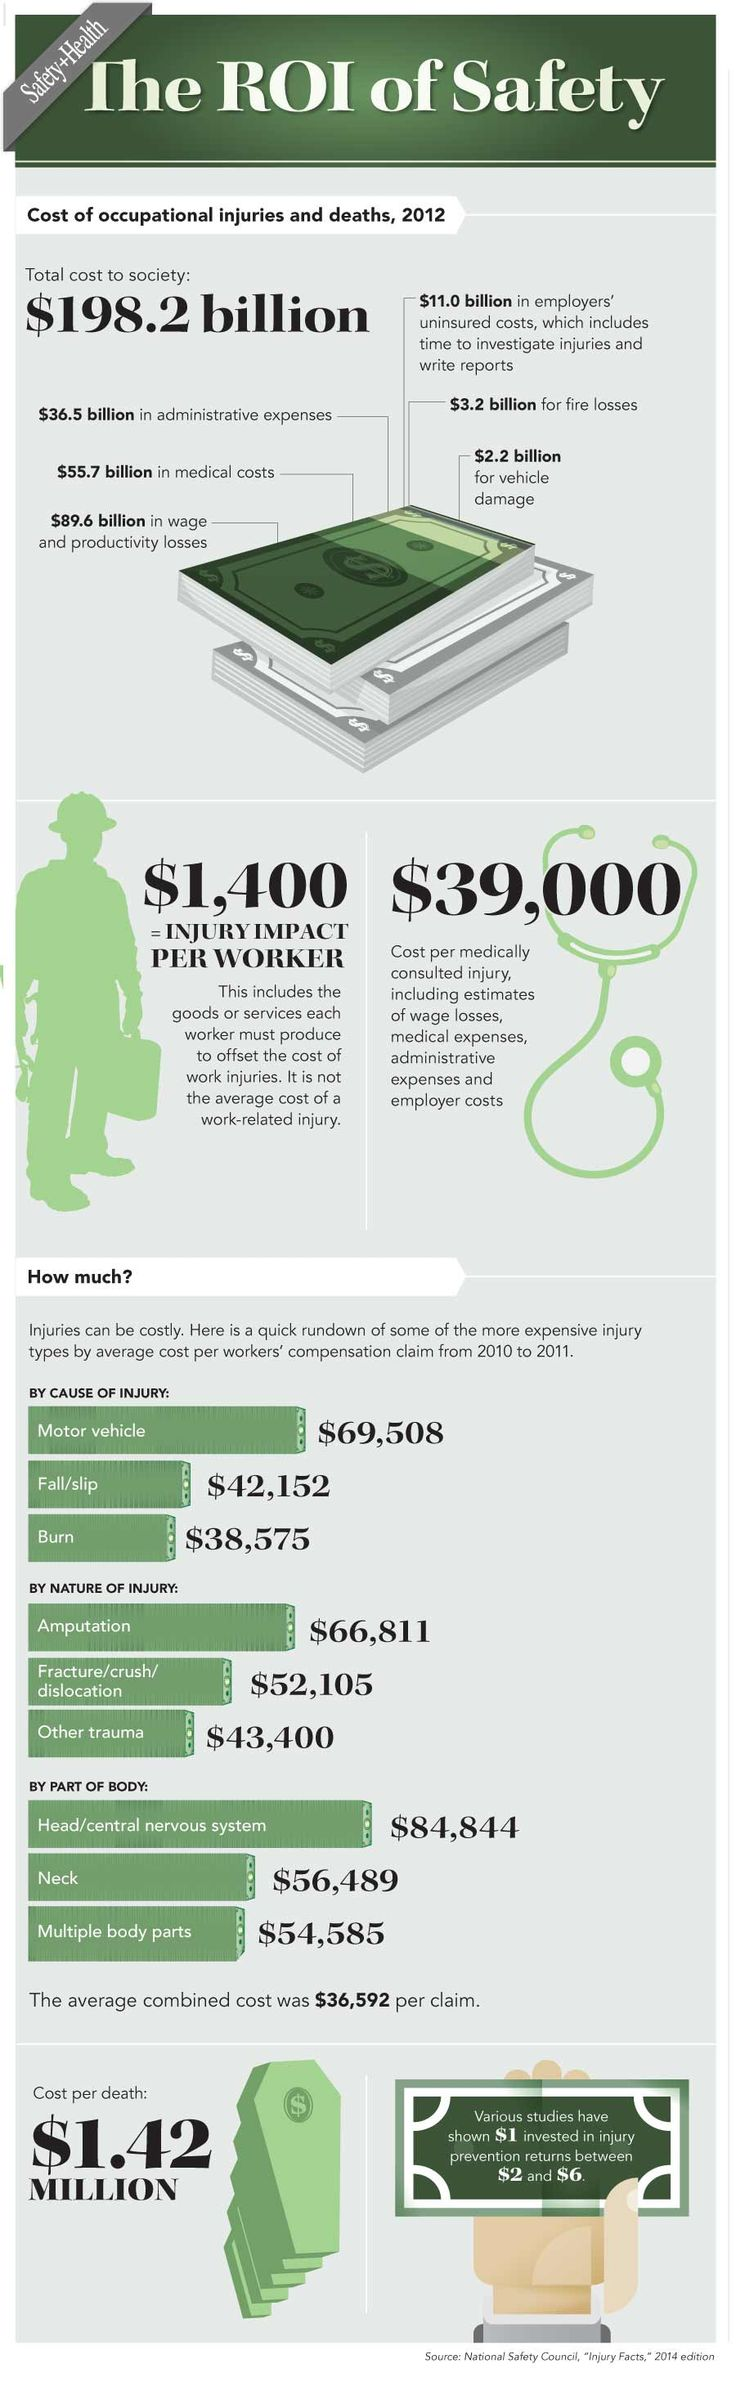 The ROI of Safety (with infographic) June 2014 Safety